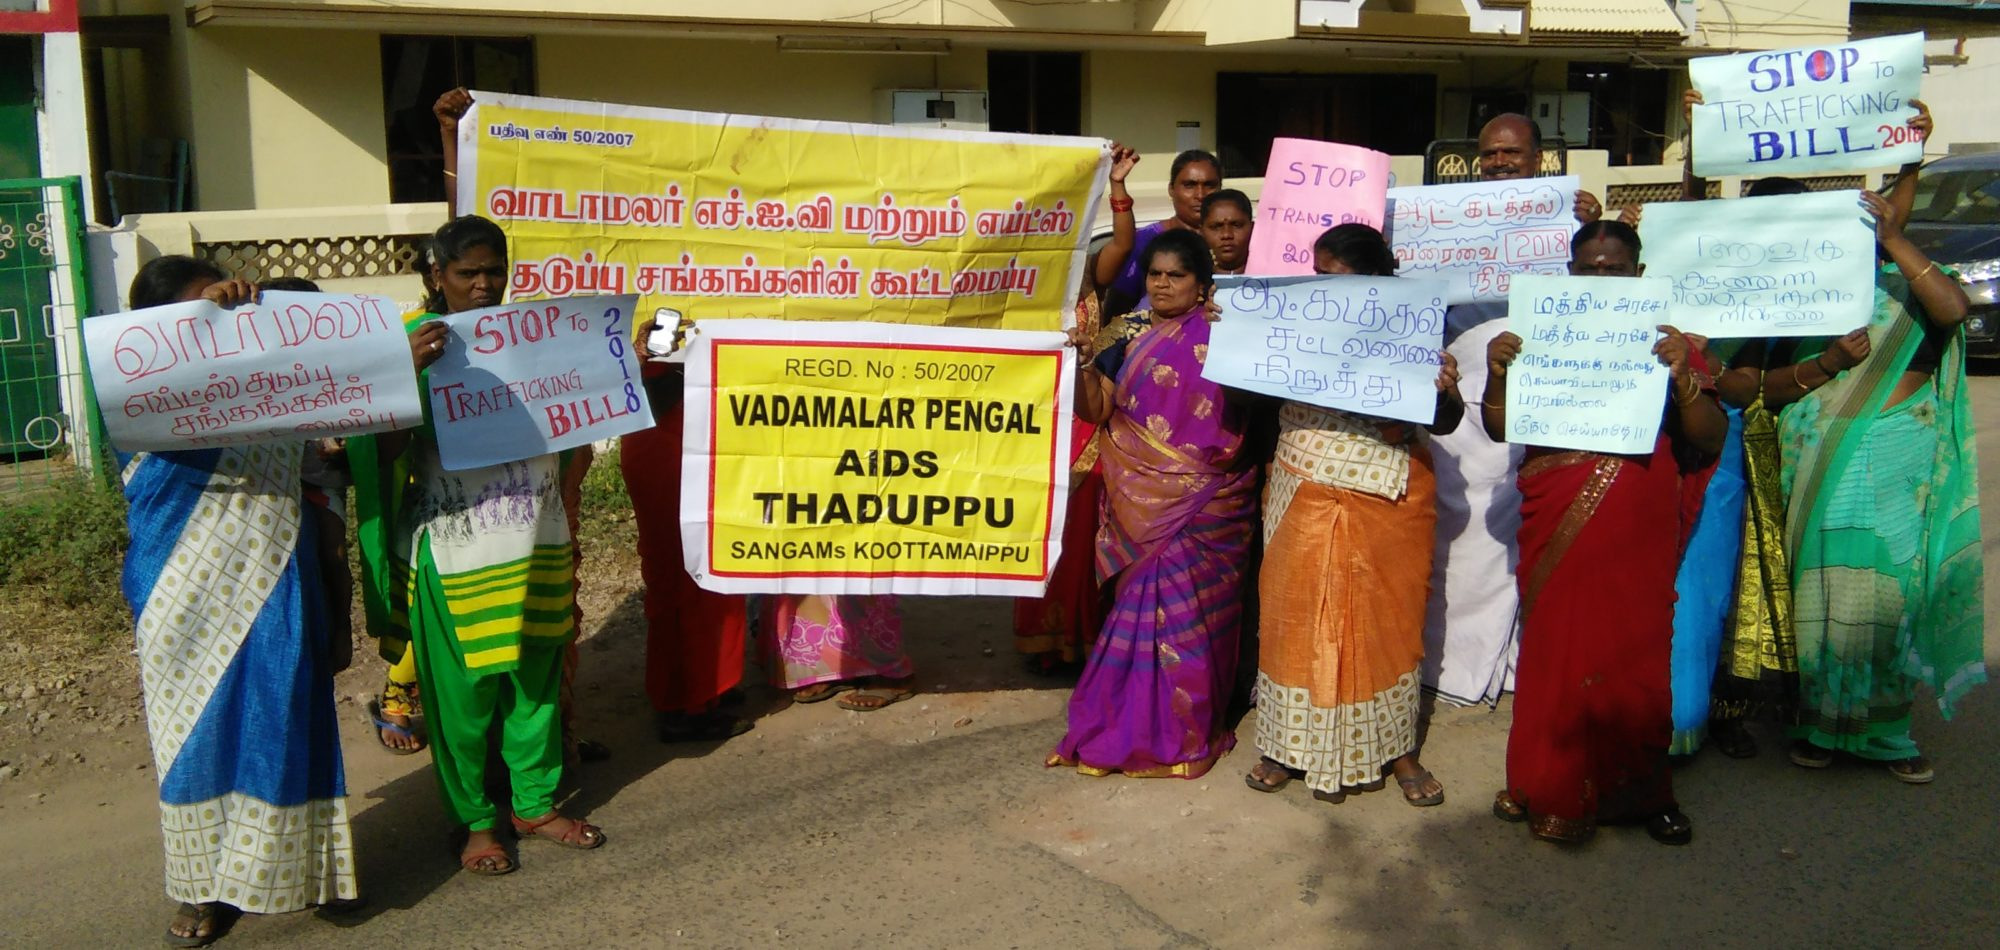 South India AIDS Action Programme